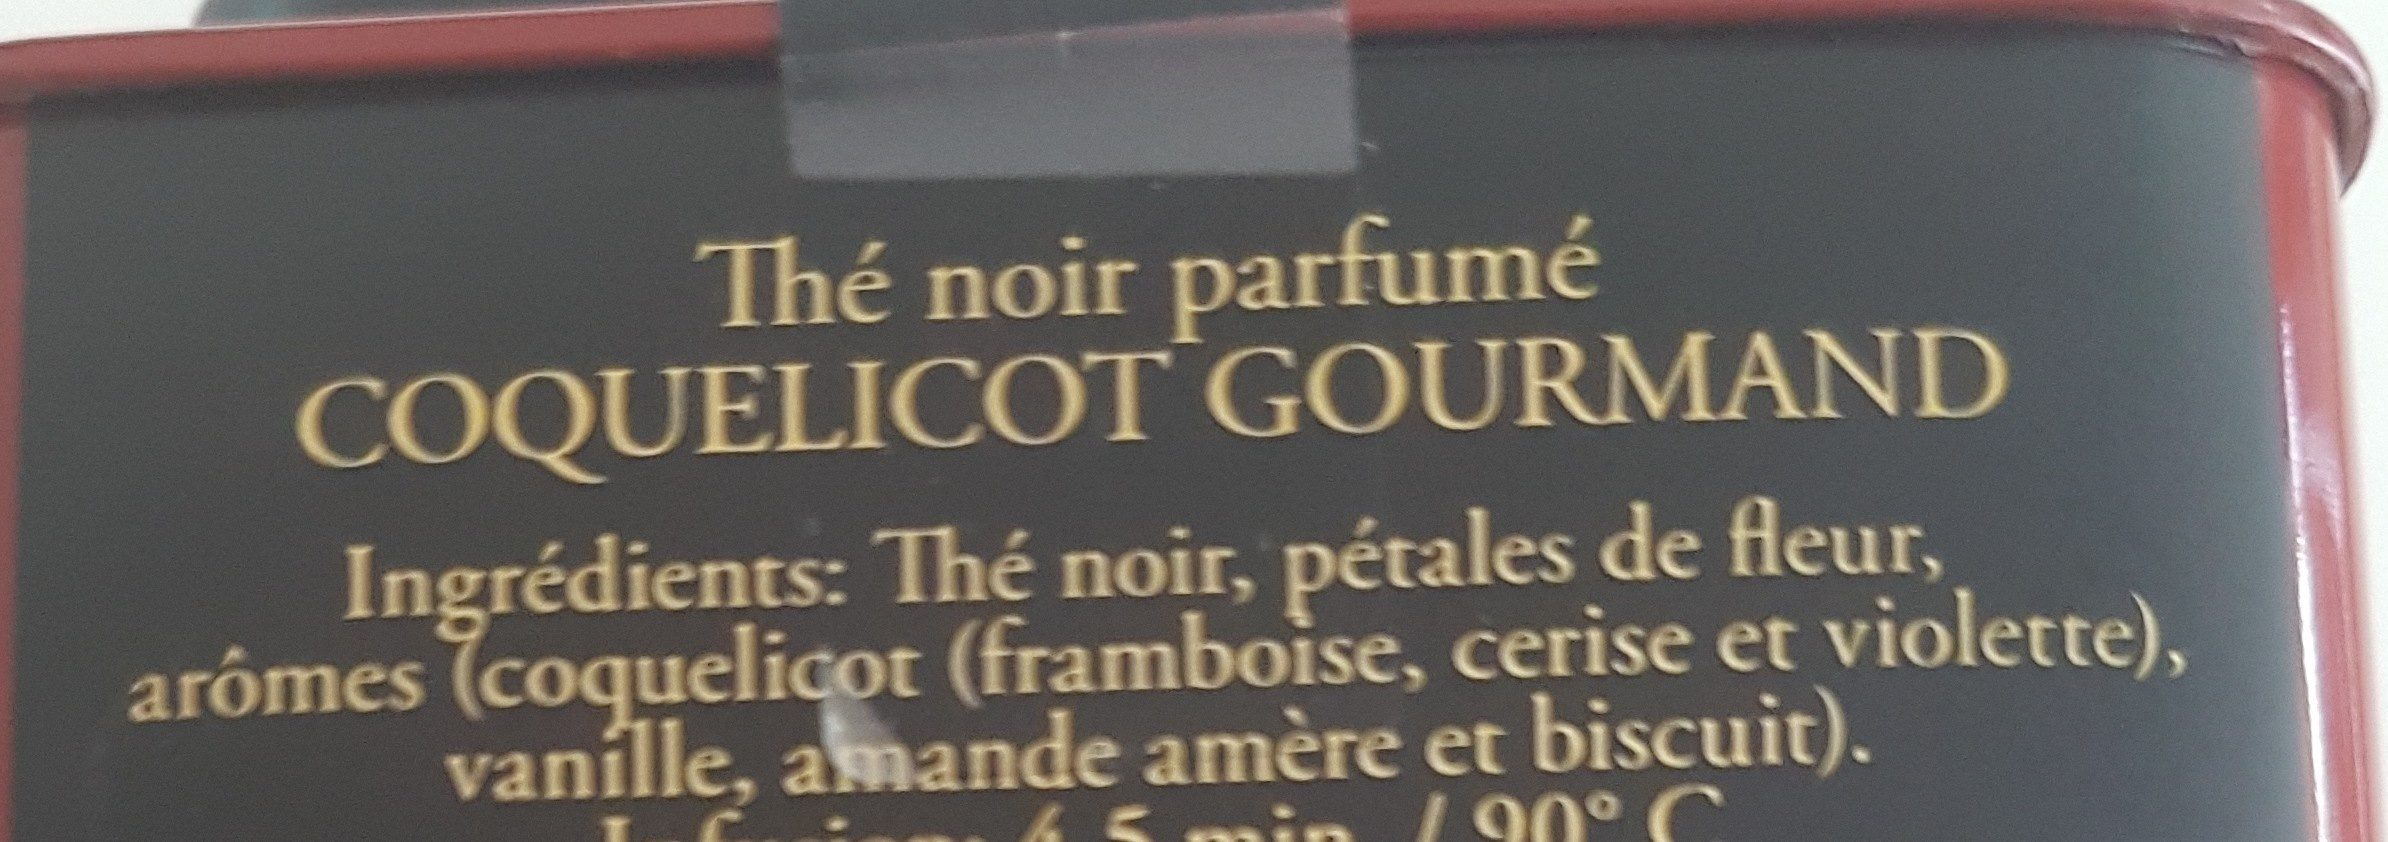 Coquelicot Gourmand 275 - Ingredients - fr